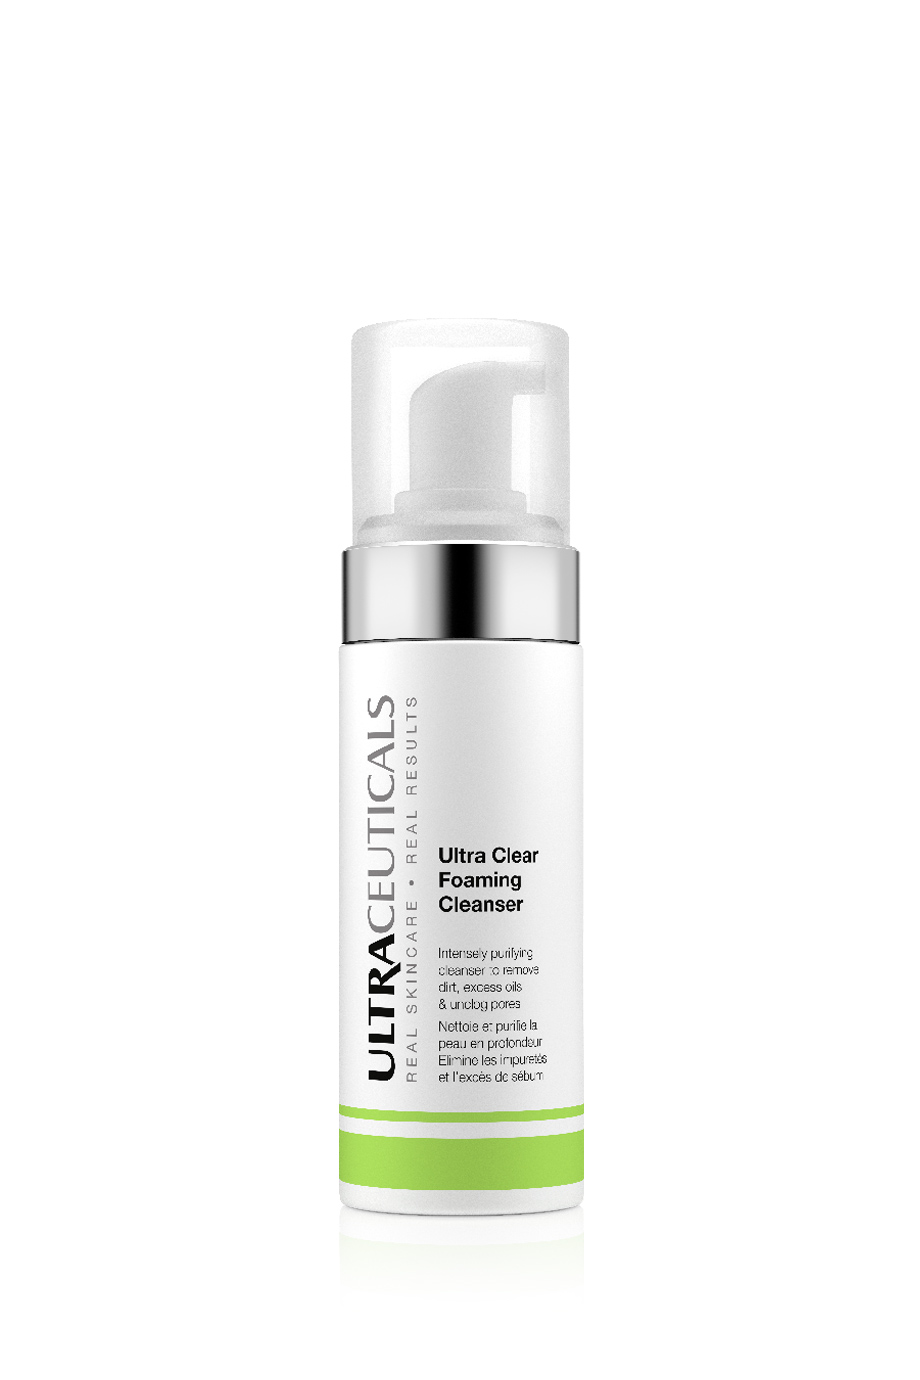 Ultraceuticals Ultra Clear Foaming Cleanser